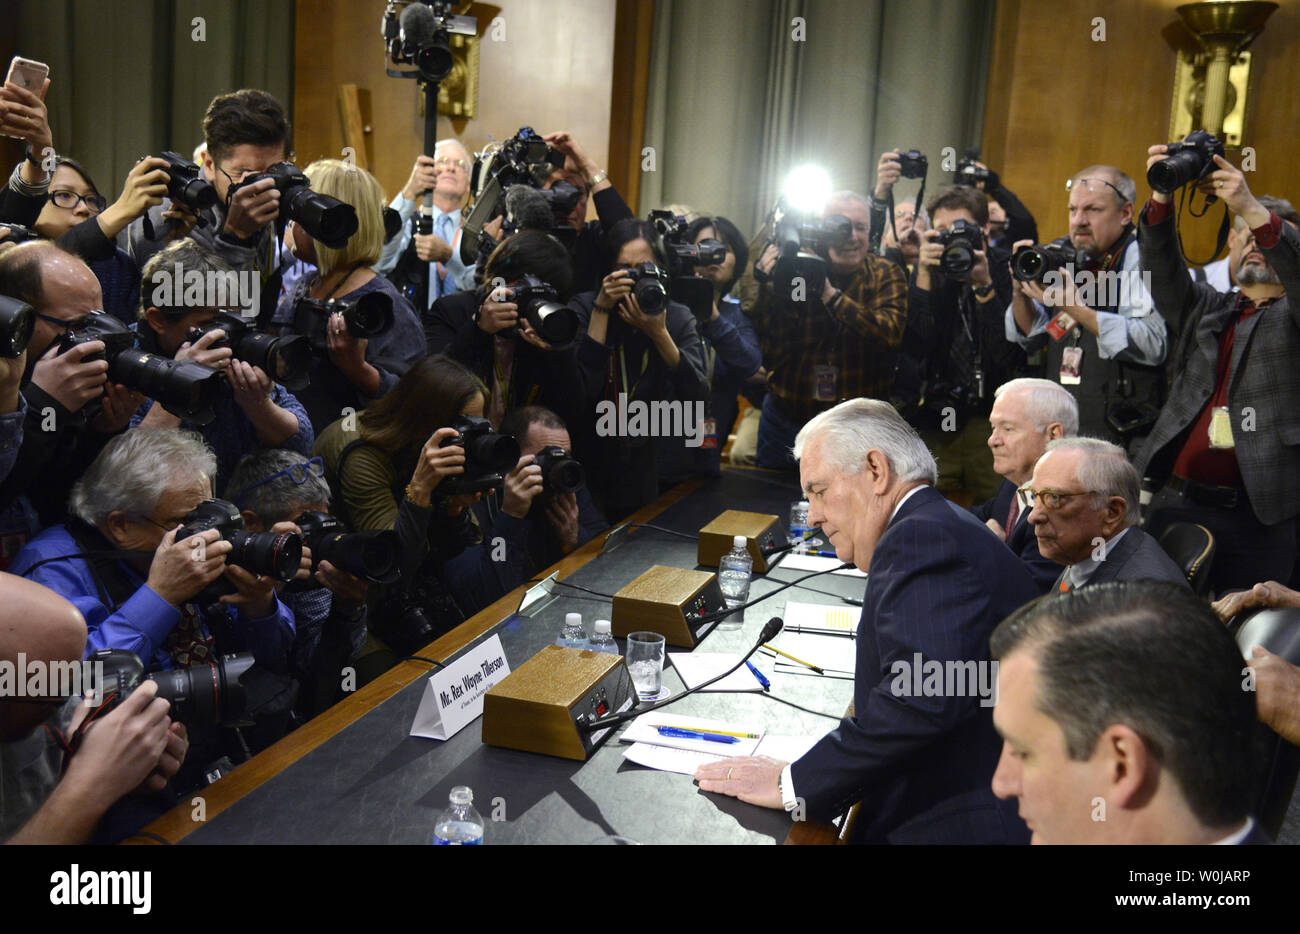 Former ExxonMobil CEO Rex Tillerson, (R), nominated for secretary of state, arrives to face the media's cameras and take his seat prior to his Senate Foreign Relations Committee confirmation hearings, on Capitol Hill, January 11, 2017, in Washington, DC. Tillerson's close business relationship with Russia is expected to be scrutinized by the panel.             Photo by Mike Theiler/UPI - Stock Image